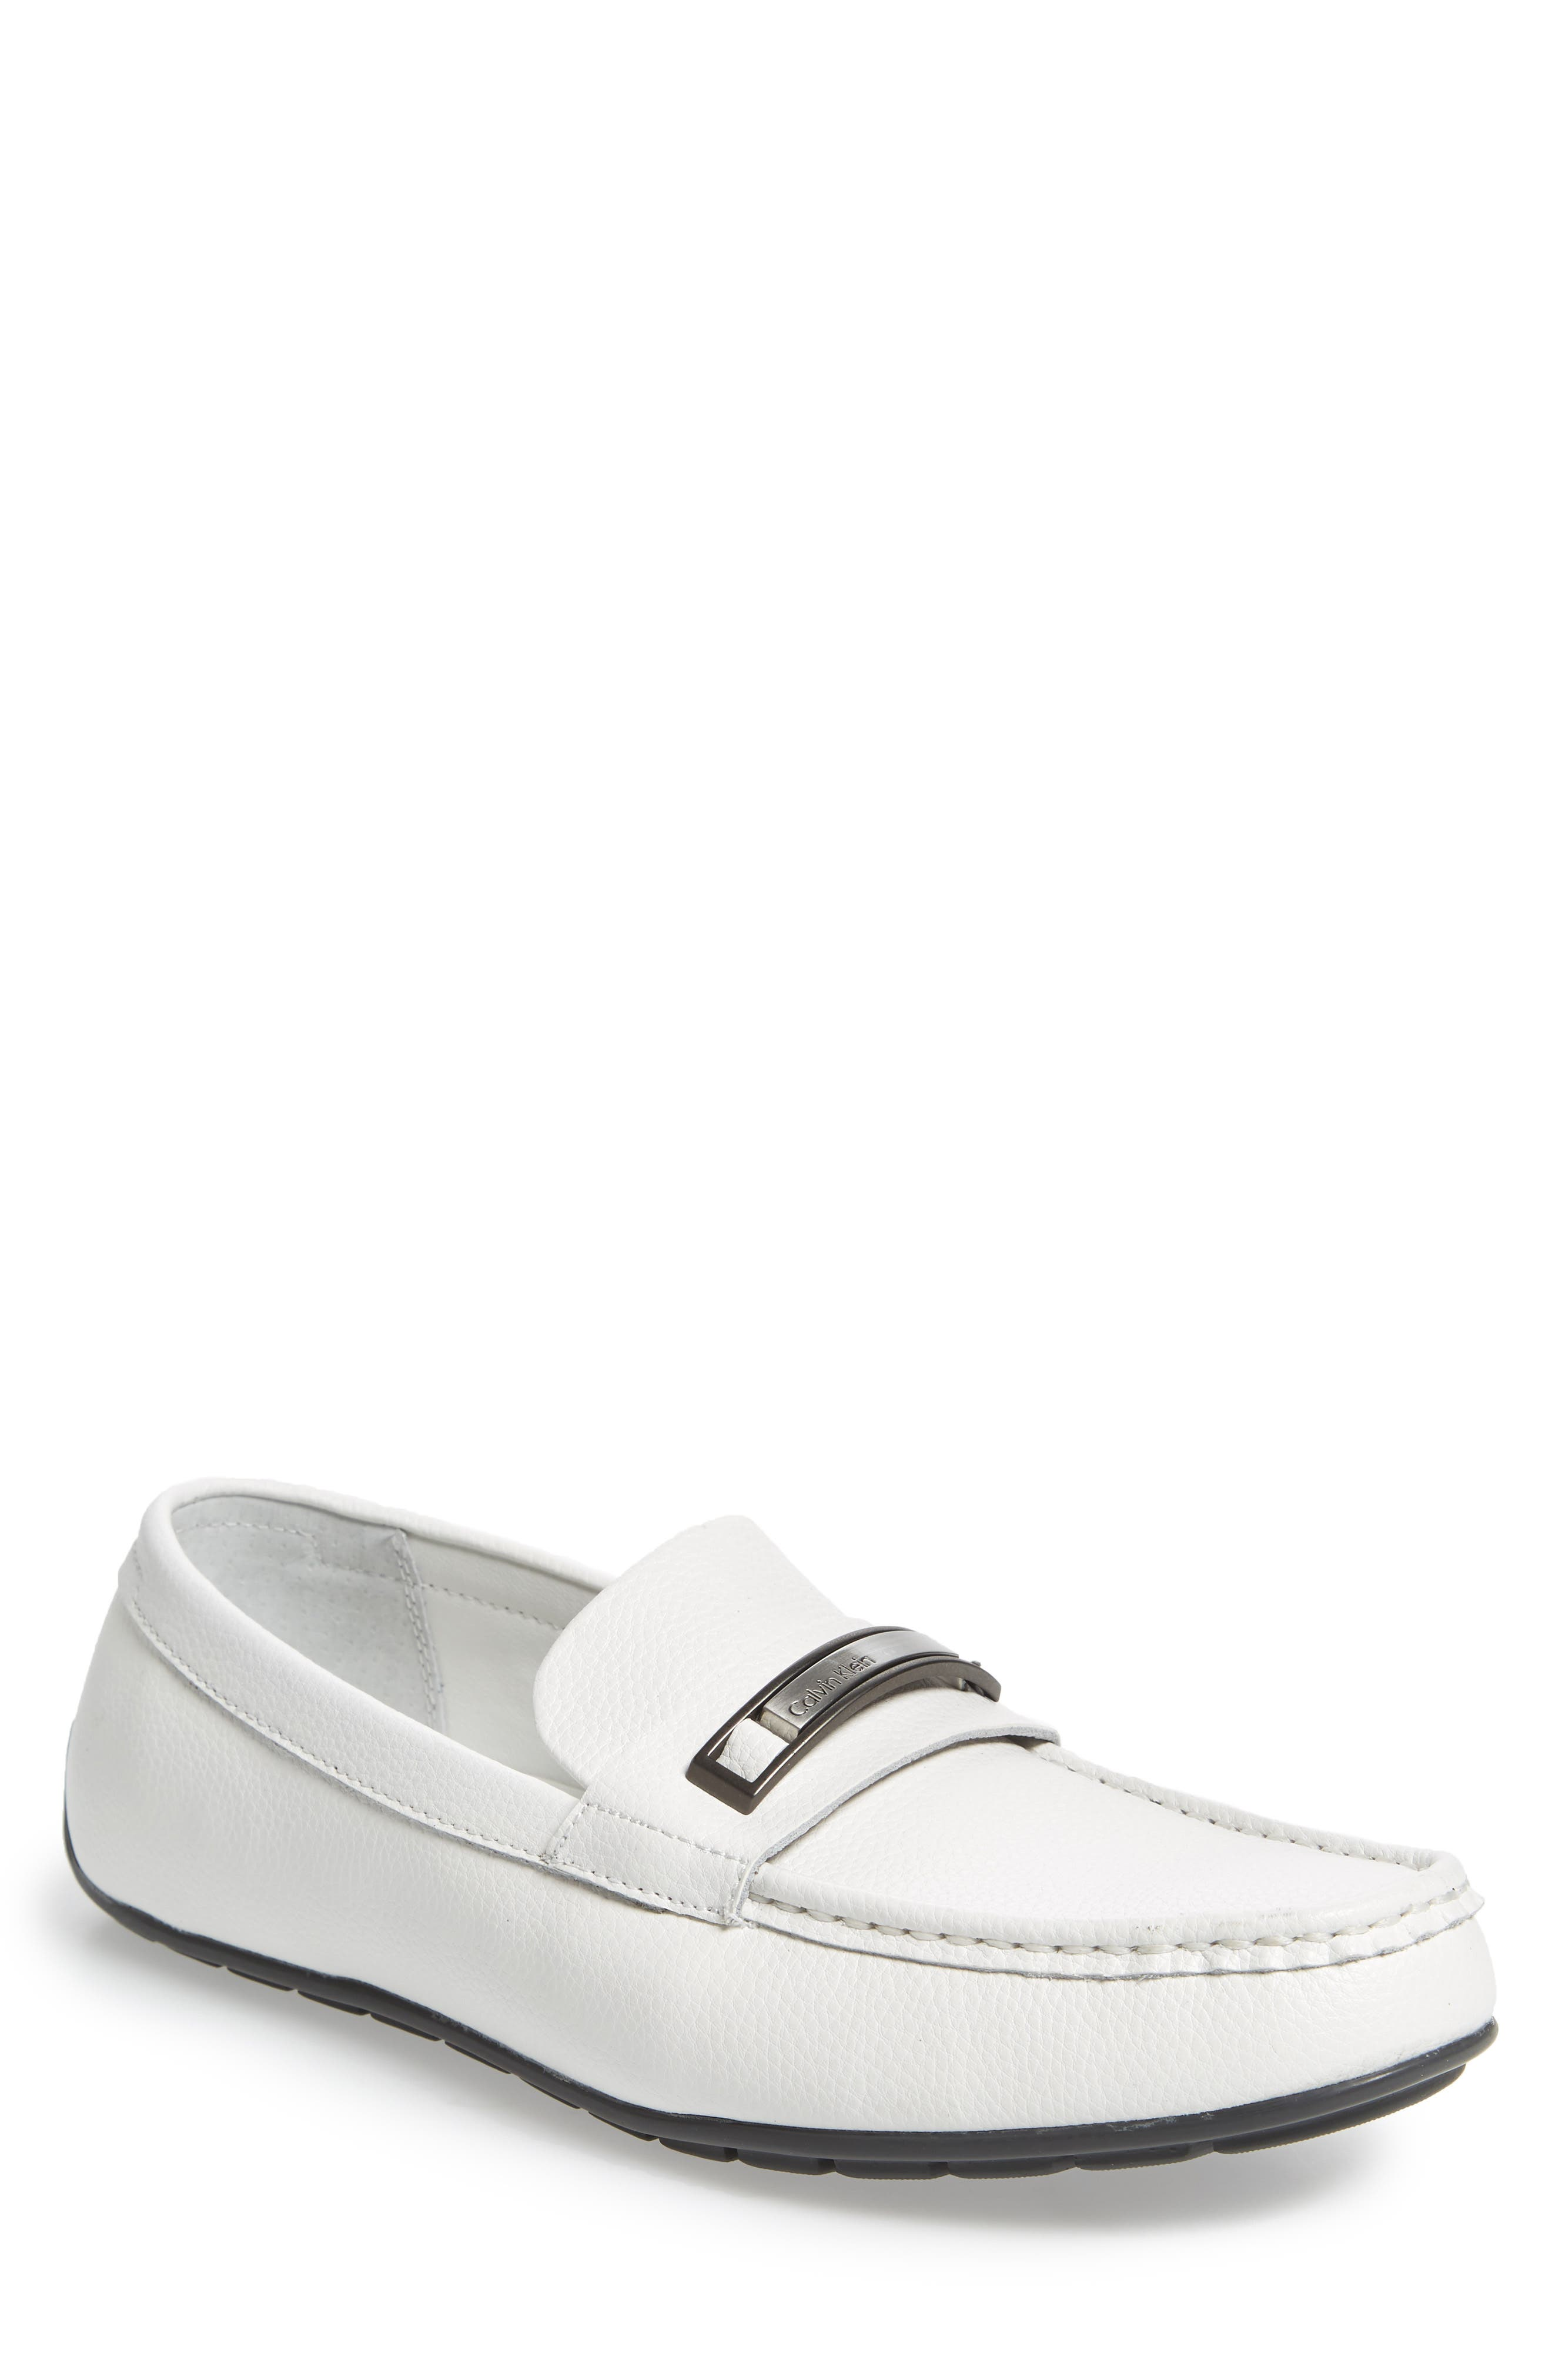 Irving Driving Loafer,                             Main thumbnail 3, color,